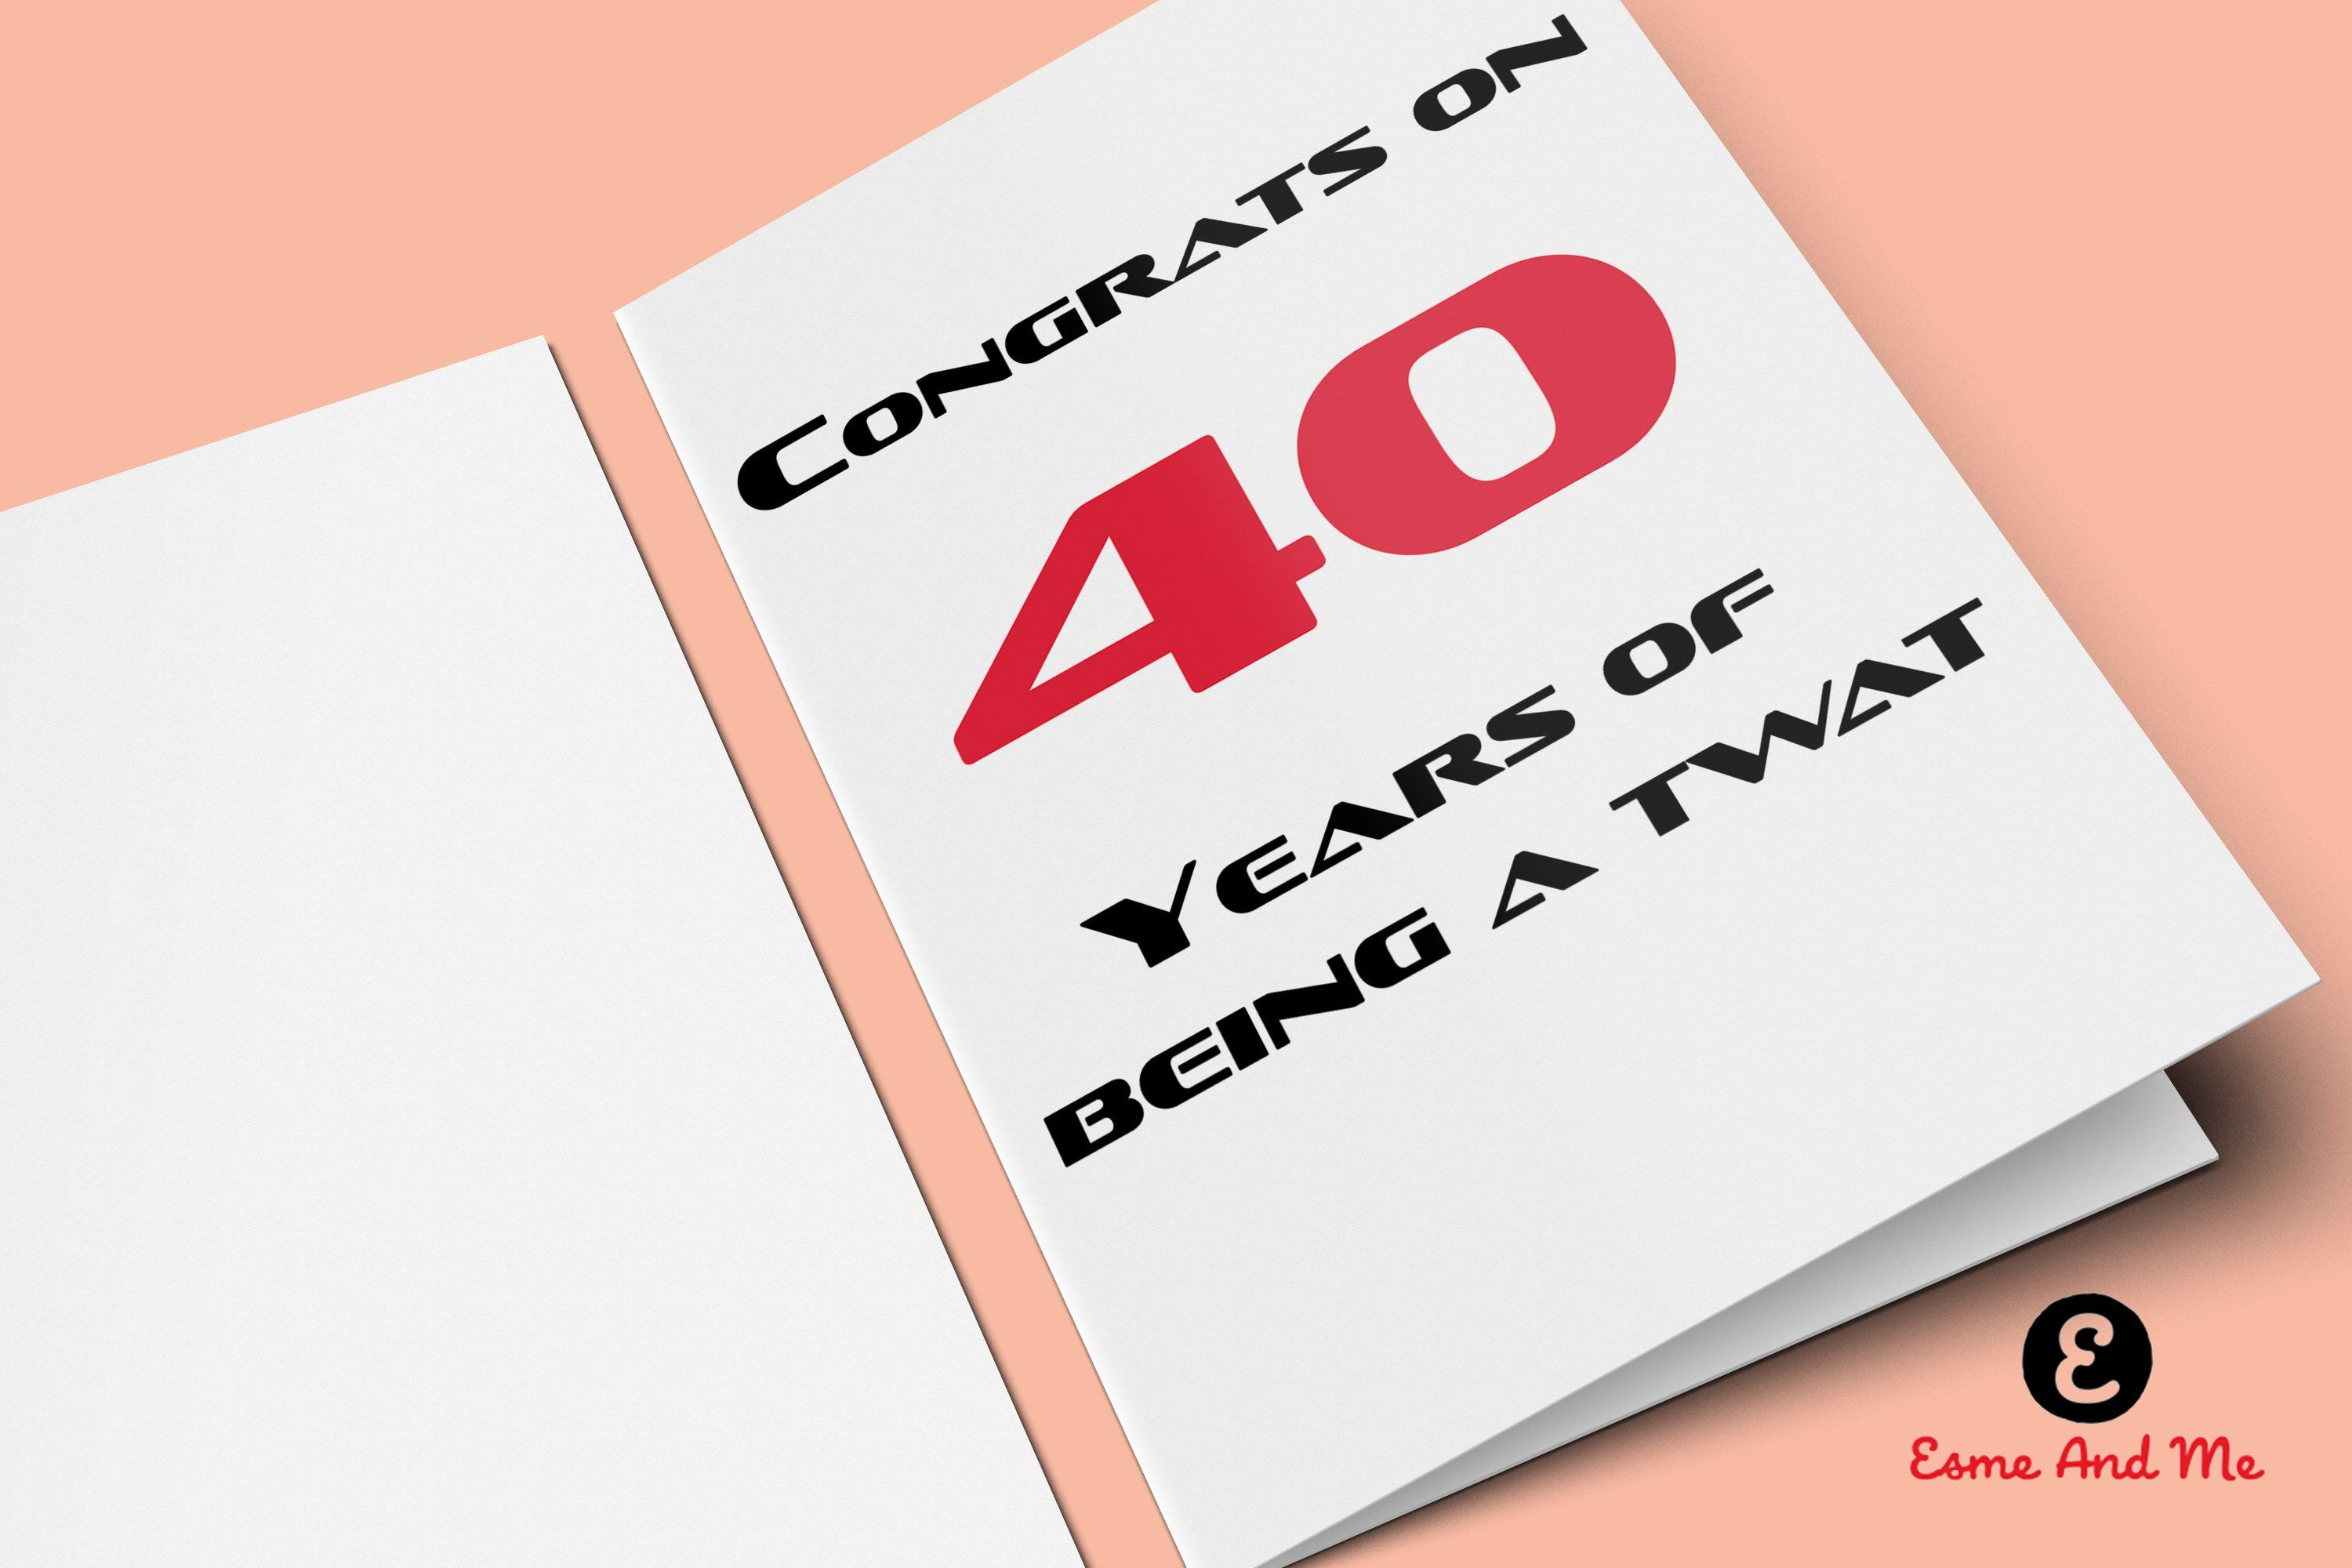 Congrats On 40 Years Of Being A Twat Funny Birthday Card Rude Cheeky Greetings By EsmeandMeUK Etsy